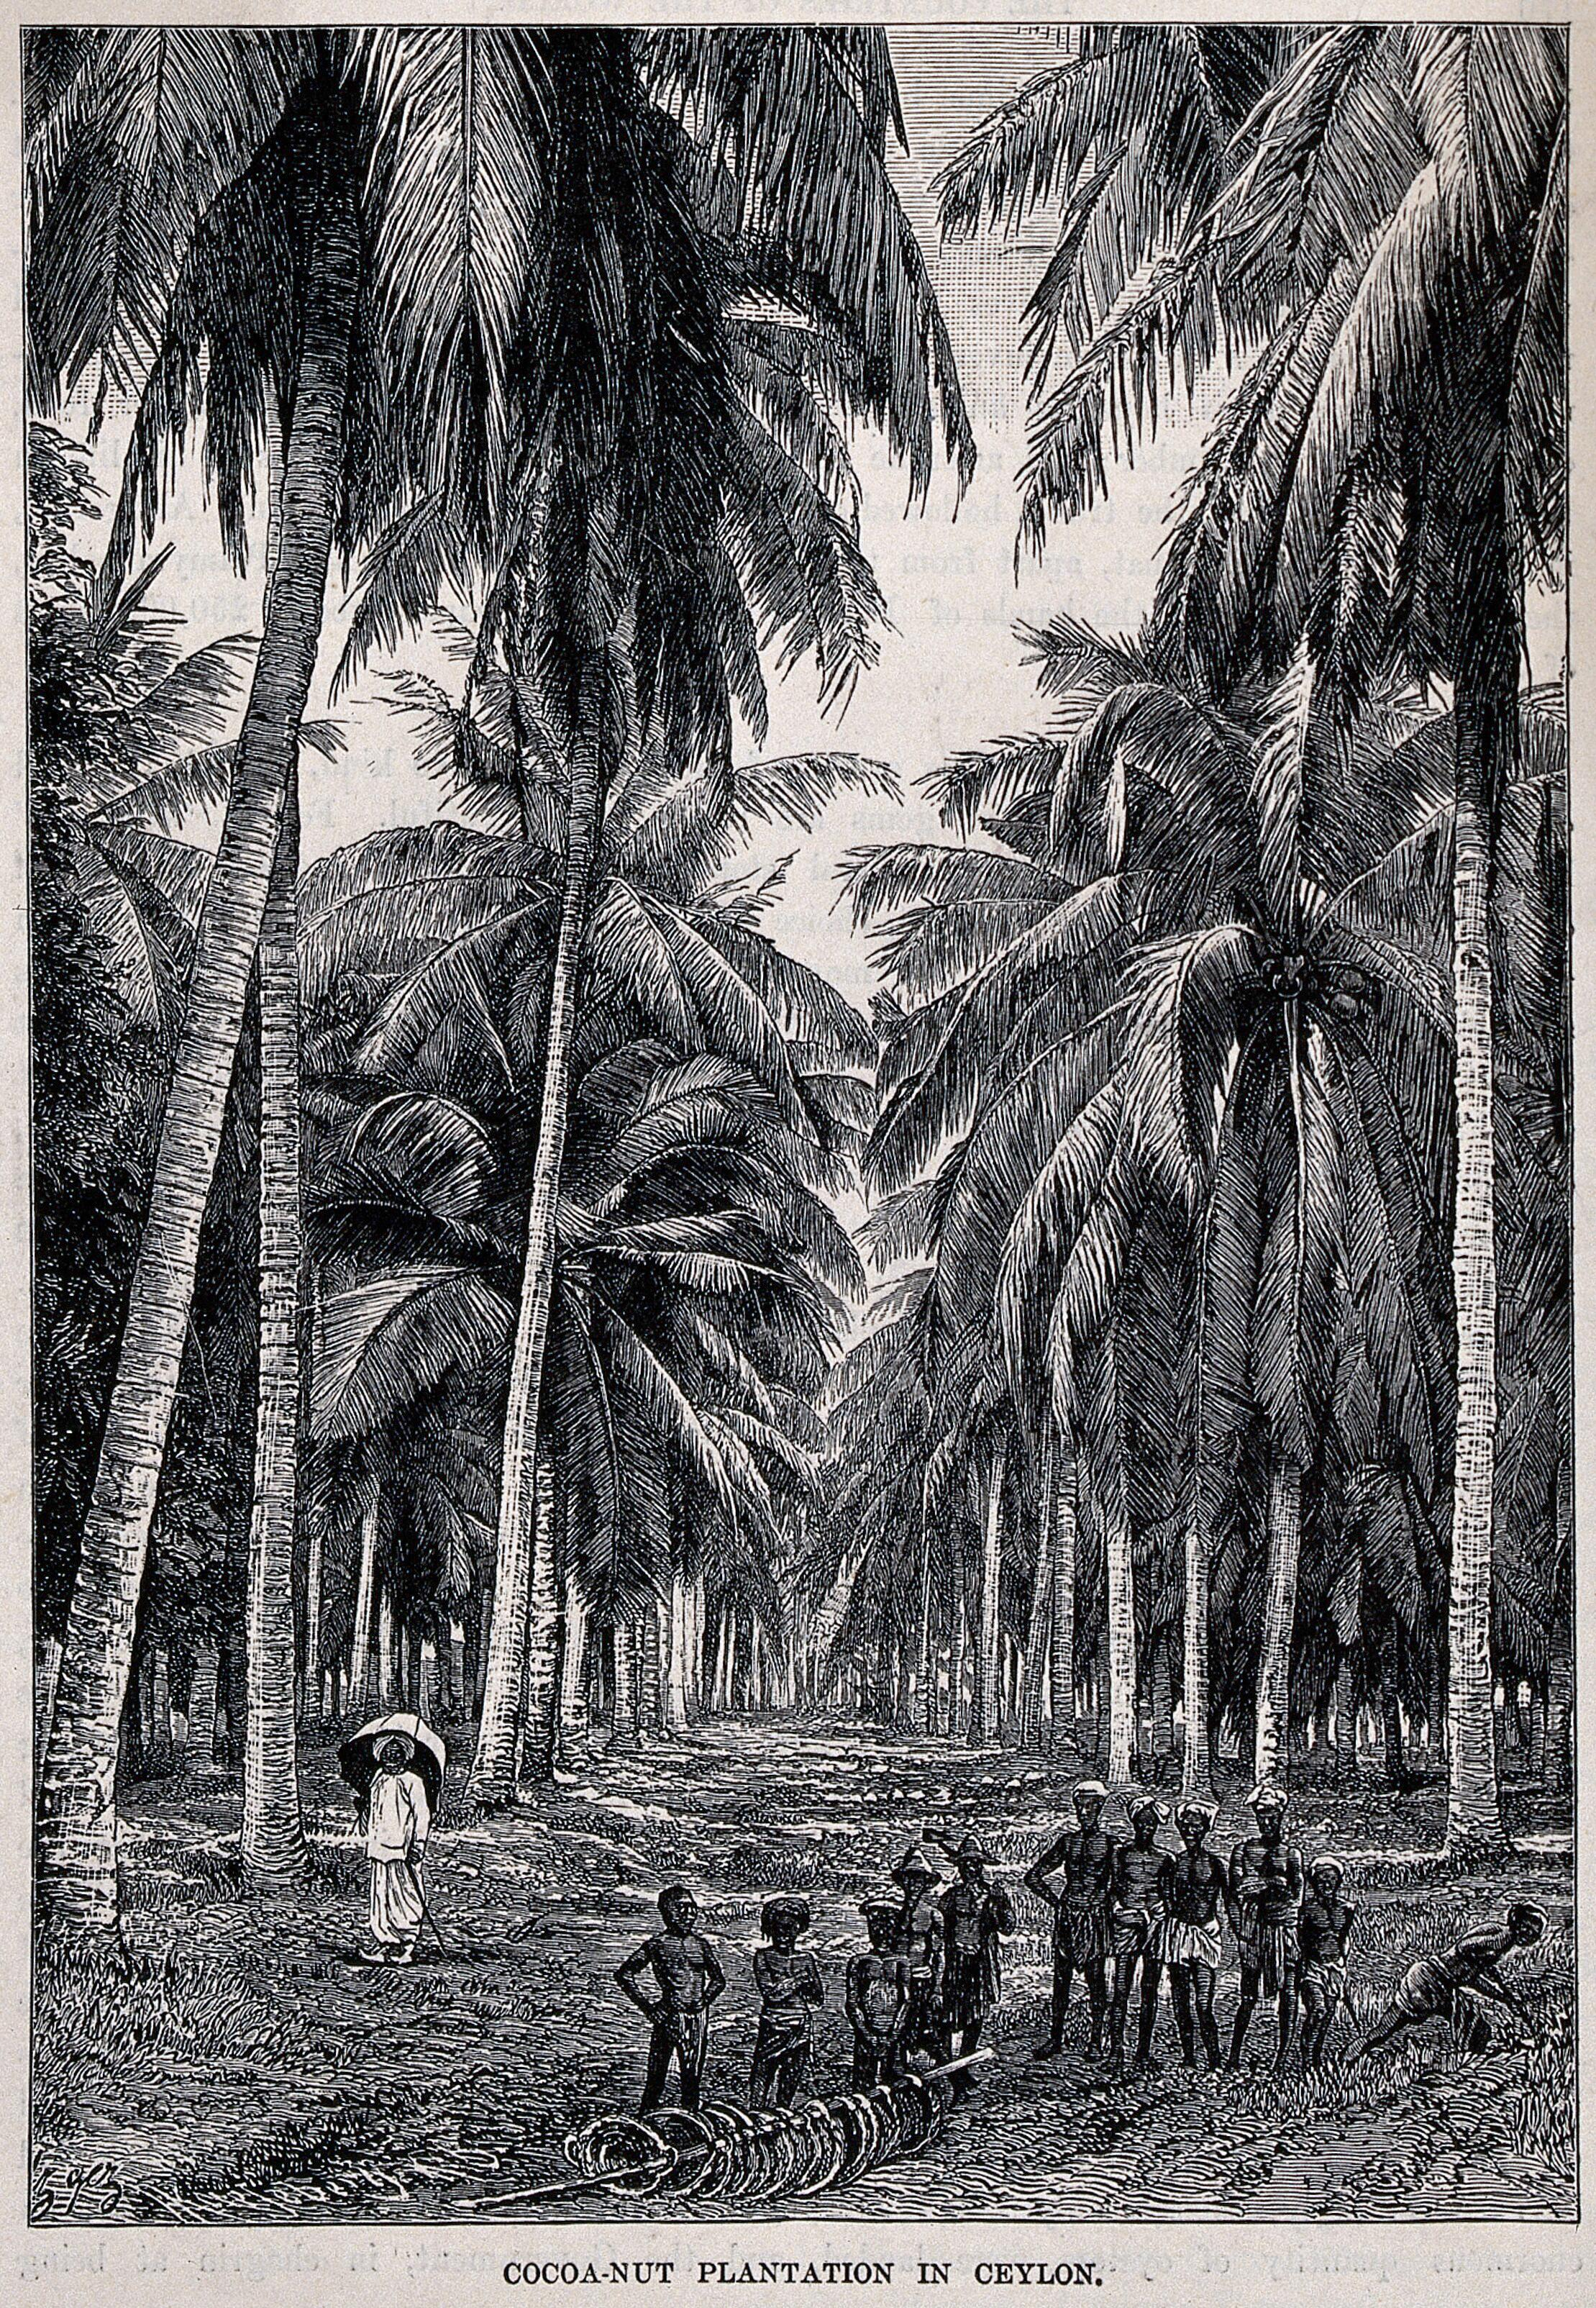 Agriculture A Coconut Tree Plantation In Ceylon Sri Lanka With Workers In The Foreground And An Overseer Off To The Left Wood Engraving Wellcome Collection